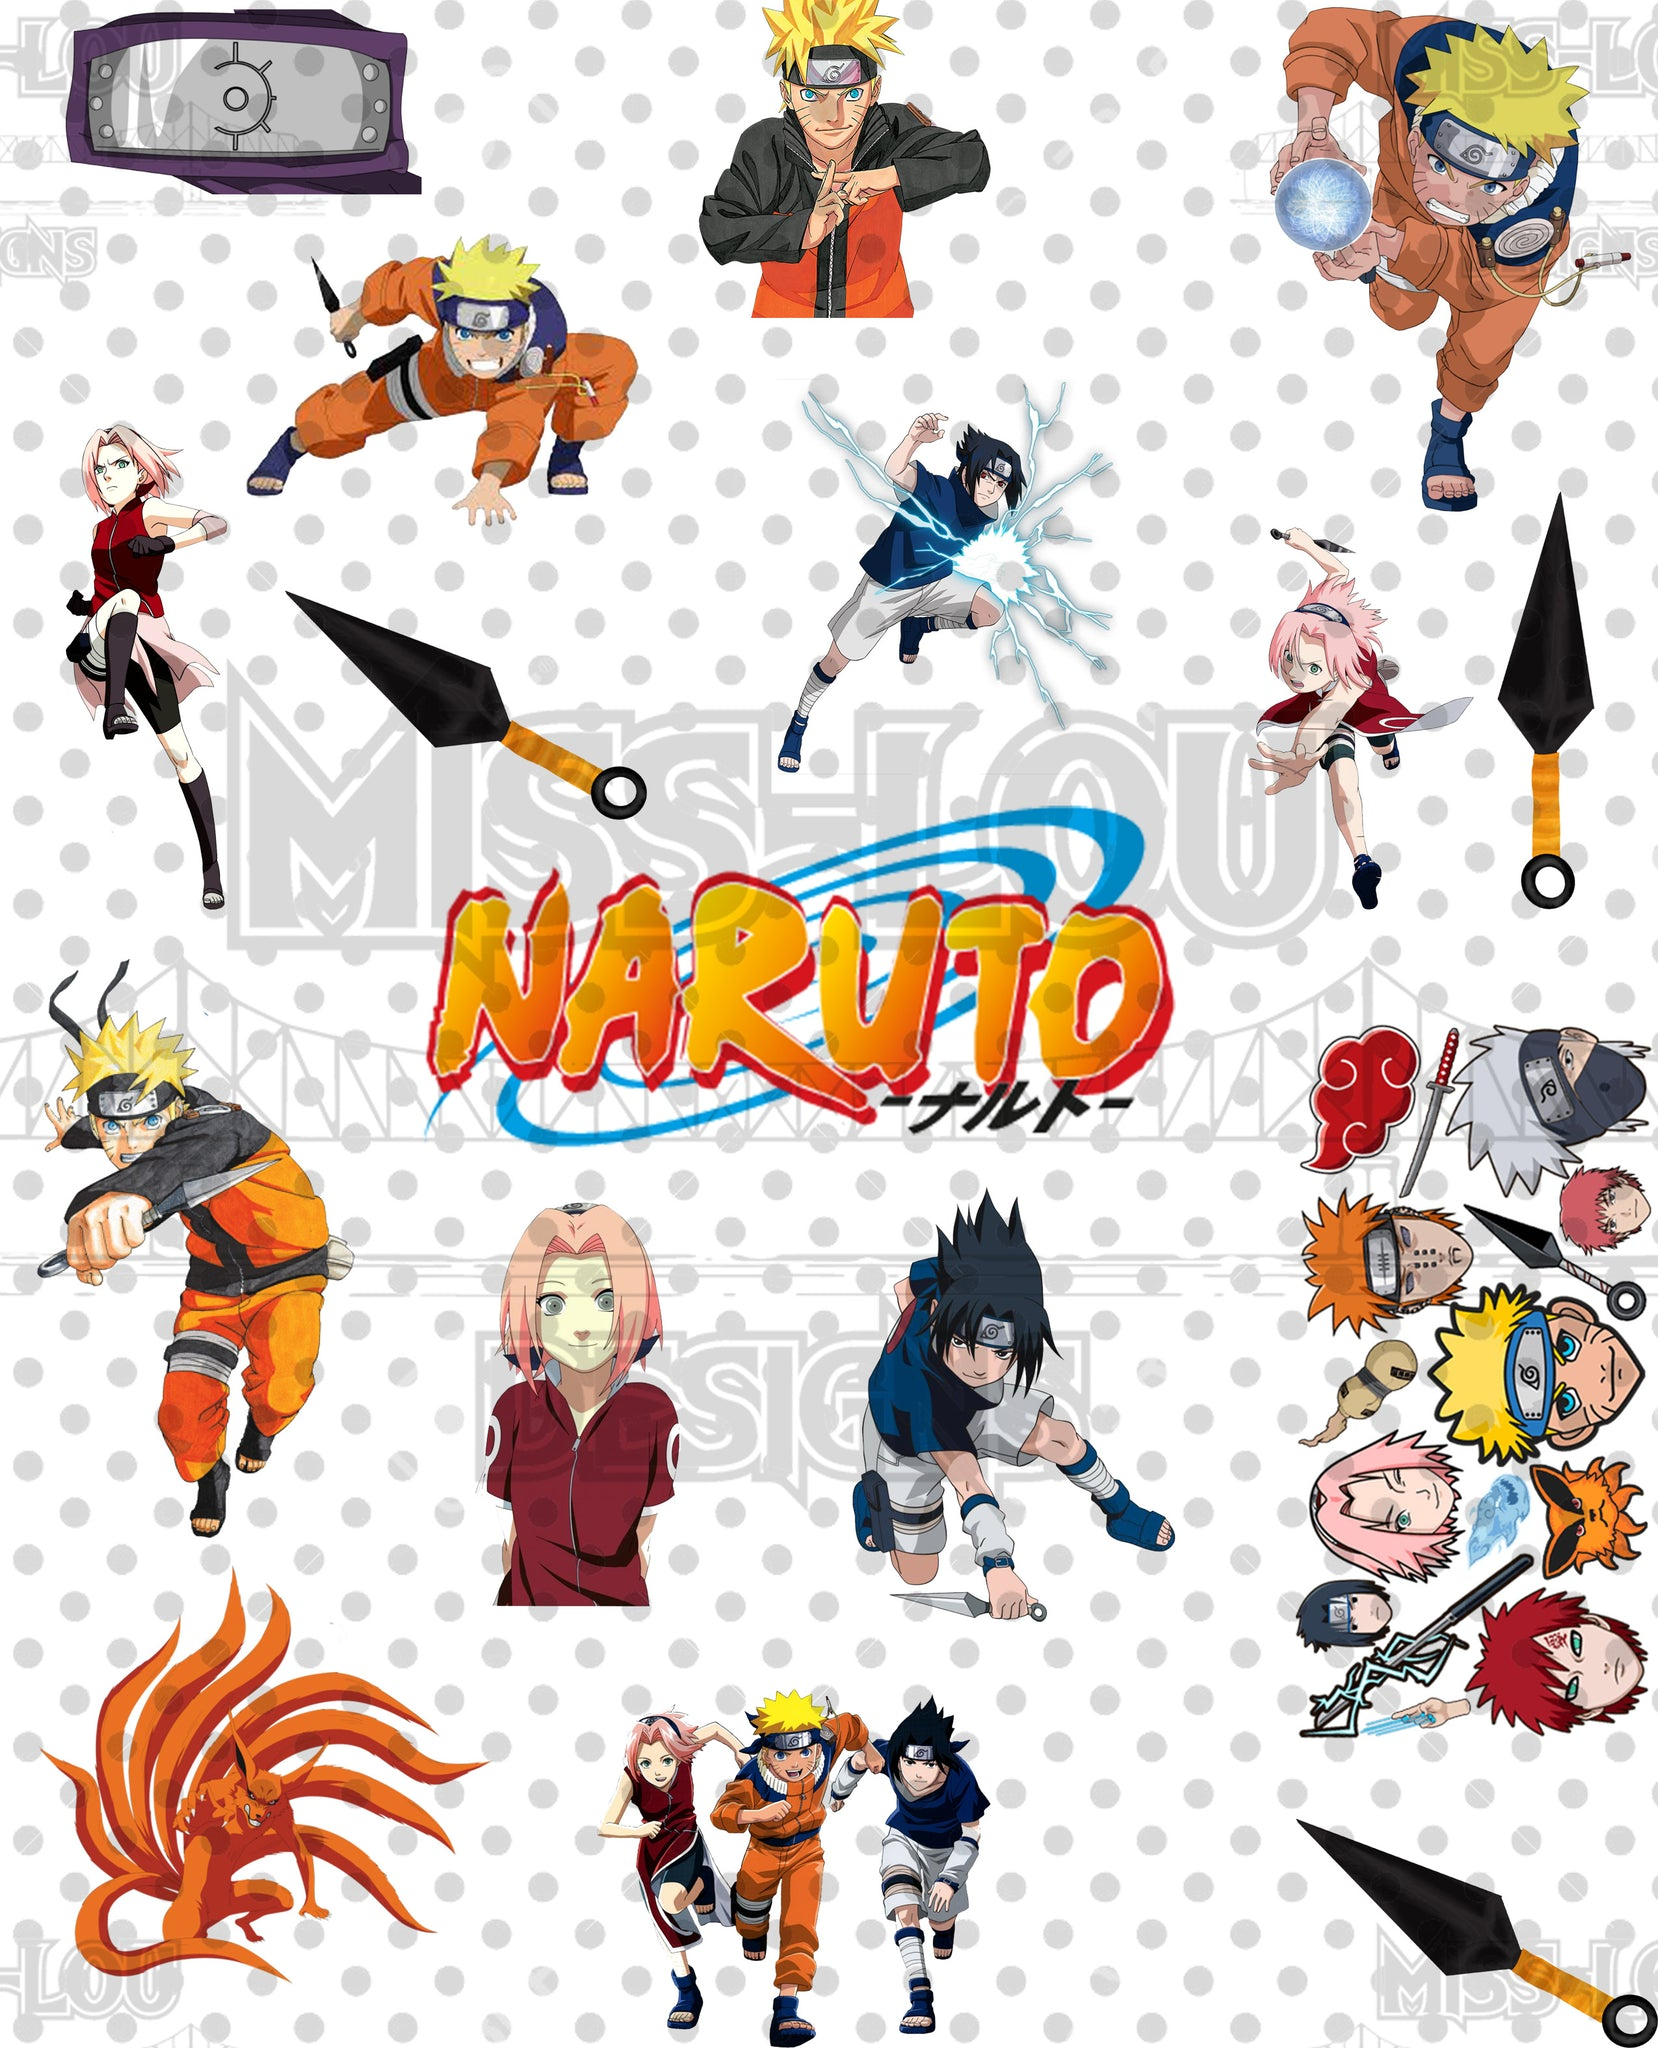 Naruto Fan Sheet Waterslide